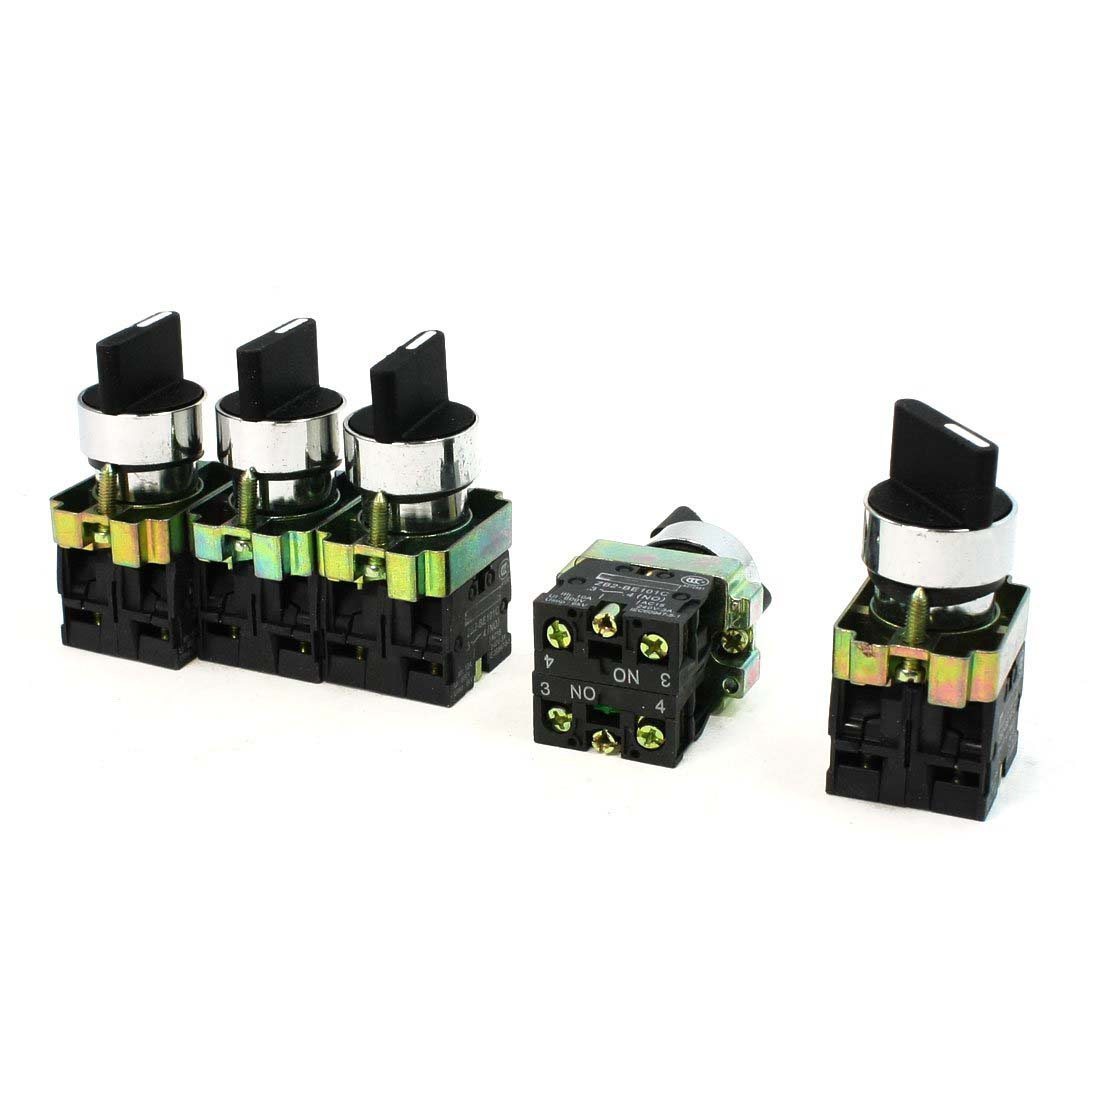 Promotion! 10A Ith 600V Ui Lug Control 4 Terminal 3 Position DPST 2NO Rotary Switch 5Pcs lw6d 2 5 position rotary changeover cam combination switch 4kw ui 380v ith 5a